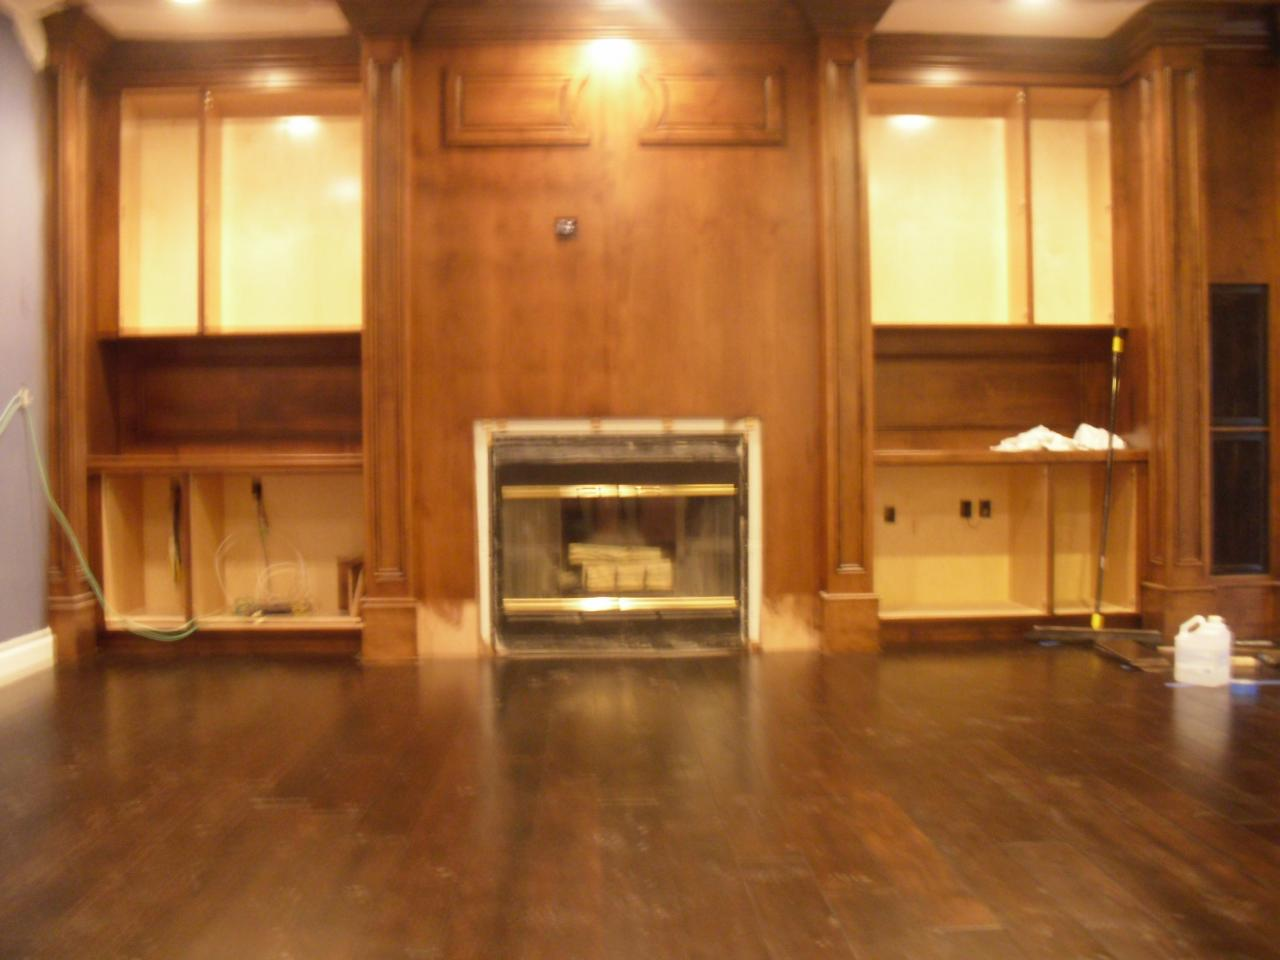 Wood floors and panels in living area